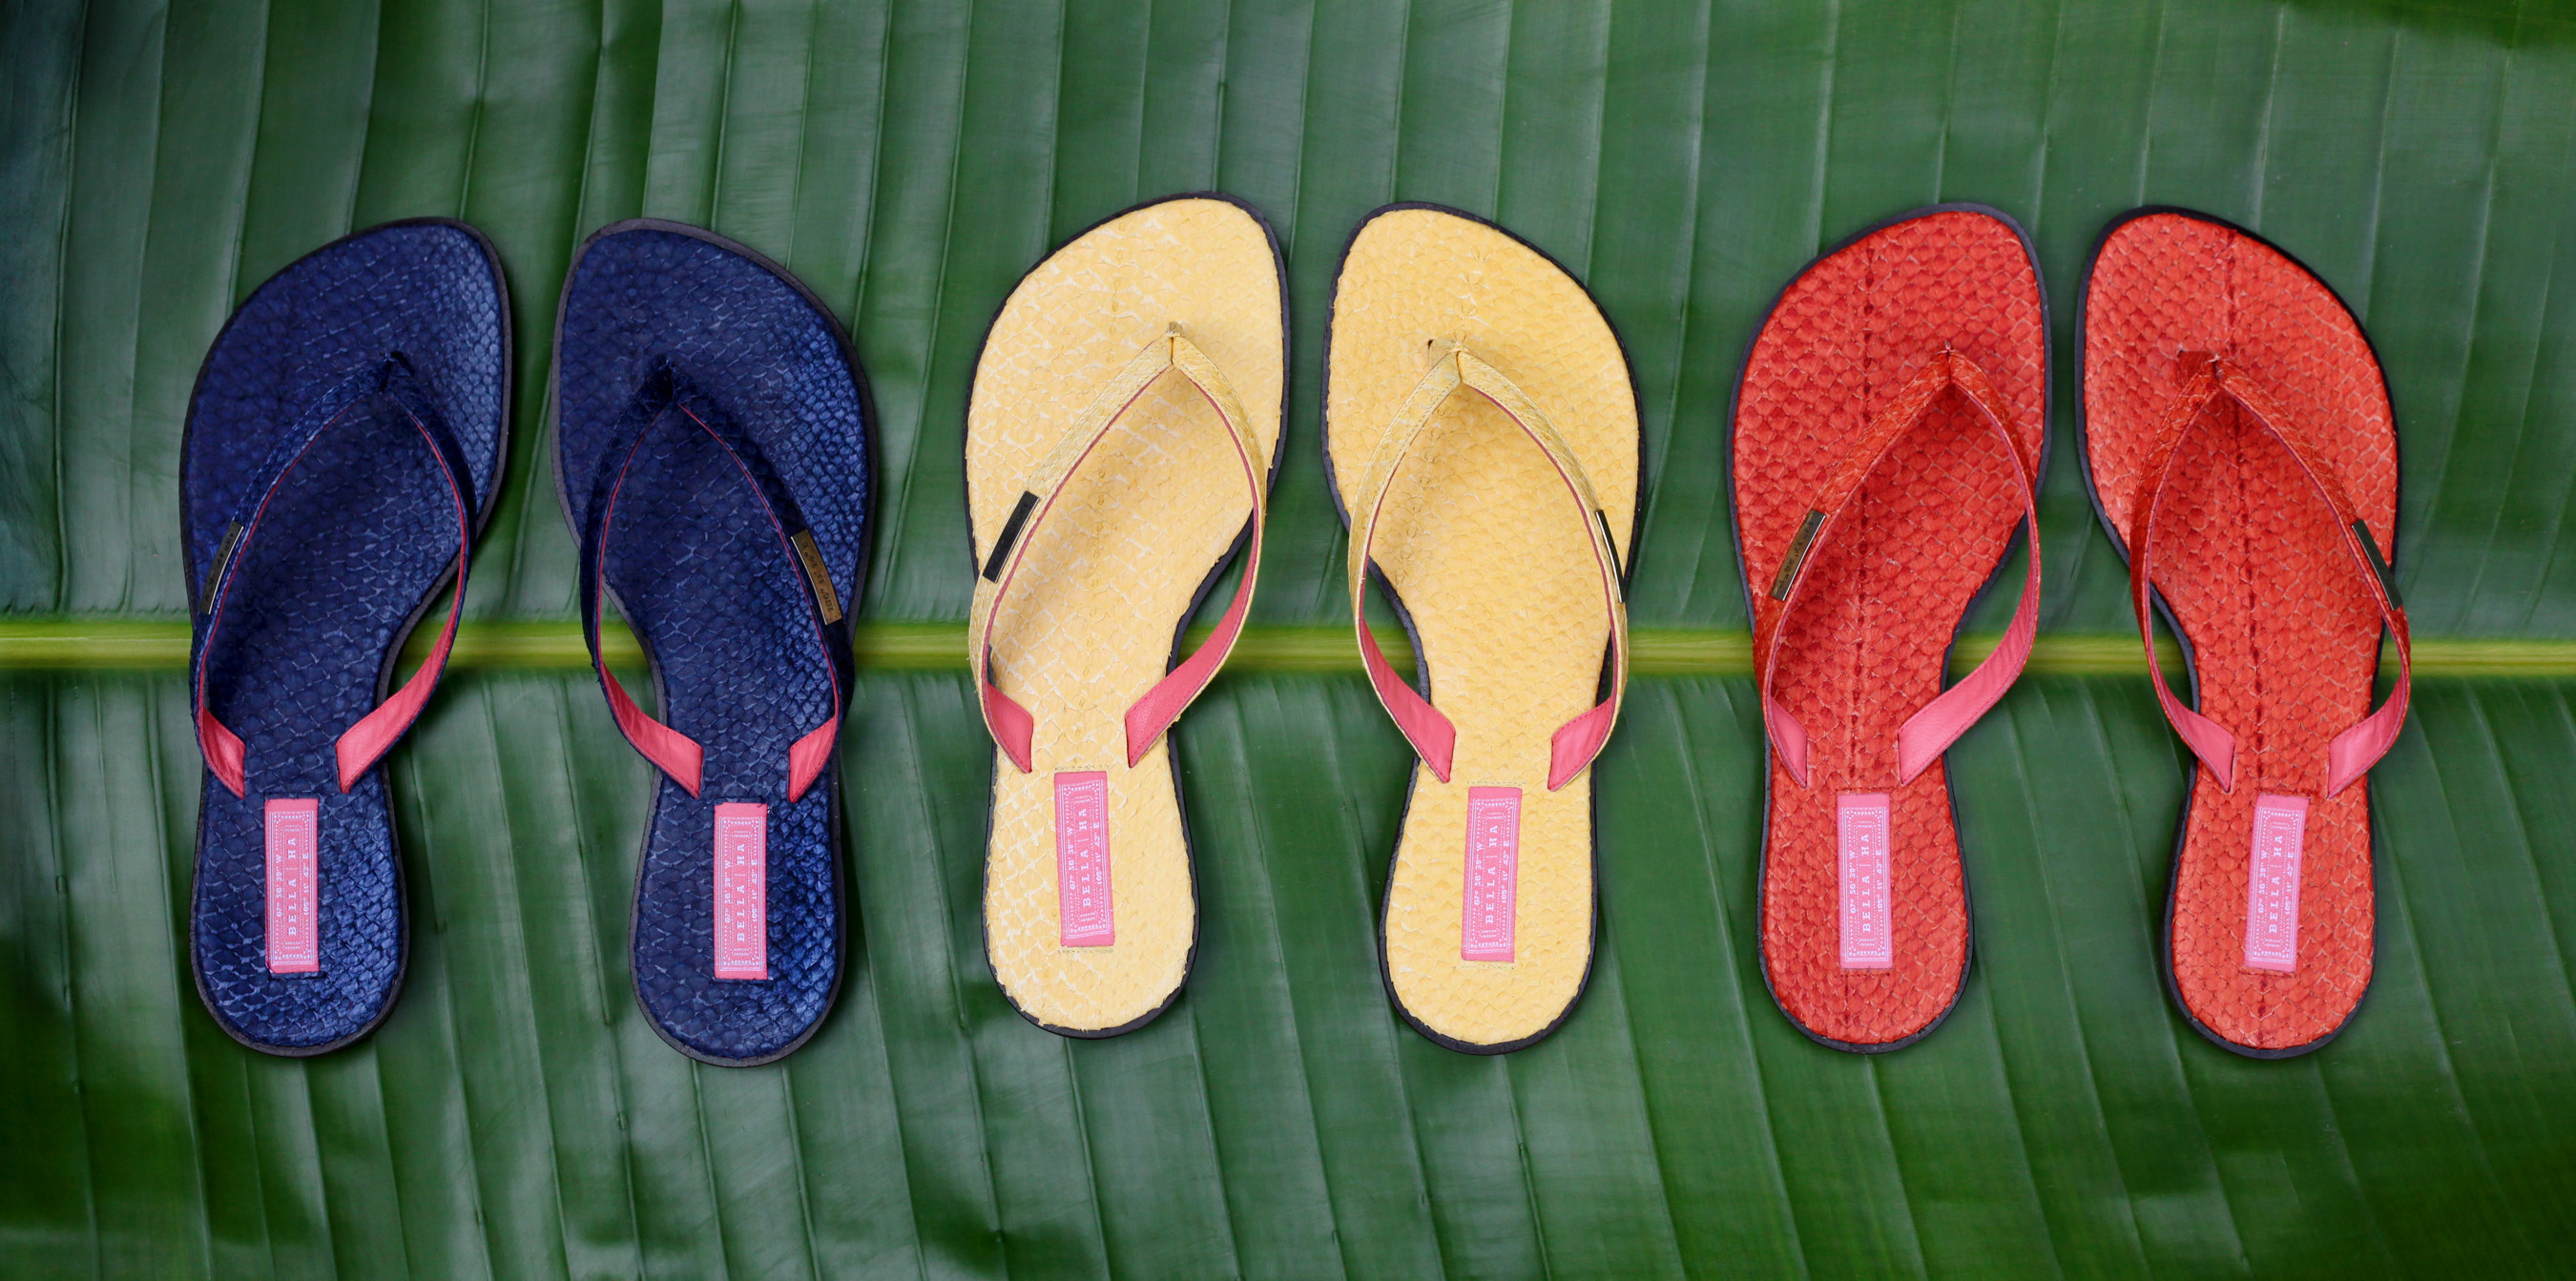 Three of the six different colors of Bella   Ha Khanh Hoa collection shoes. The tags on each shoe give the longitude and latitude of the Khanh Hoa province in Vietnam, where the first Solar Suitcase was donated.